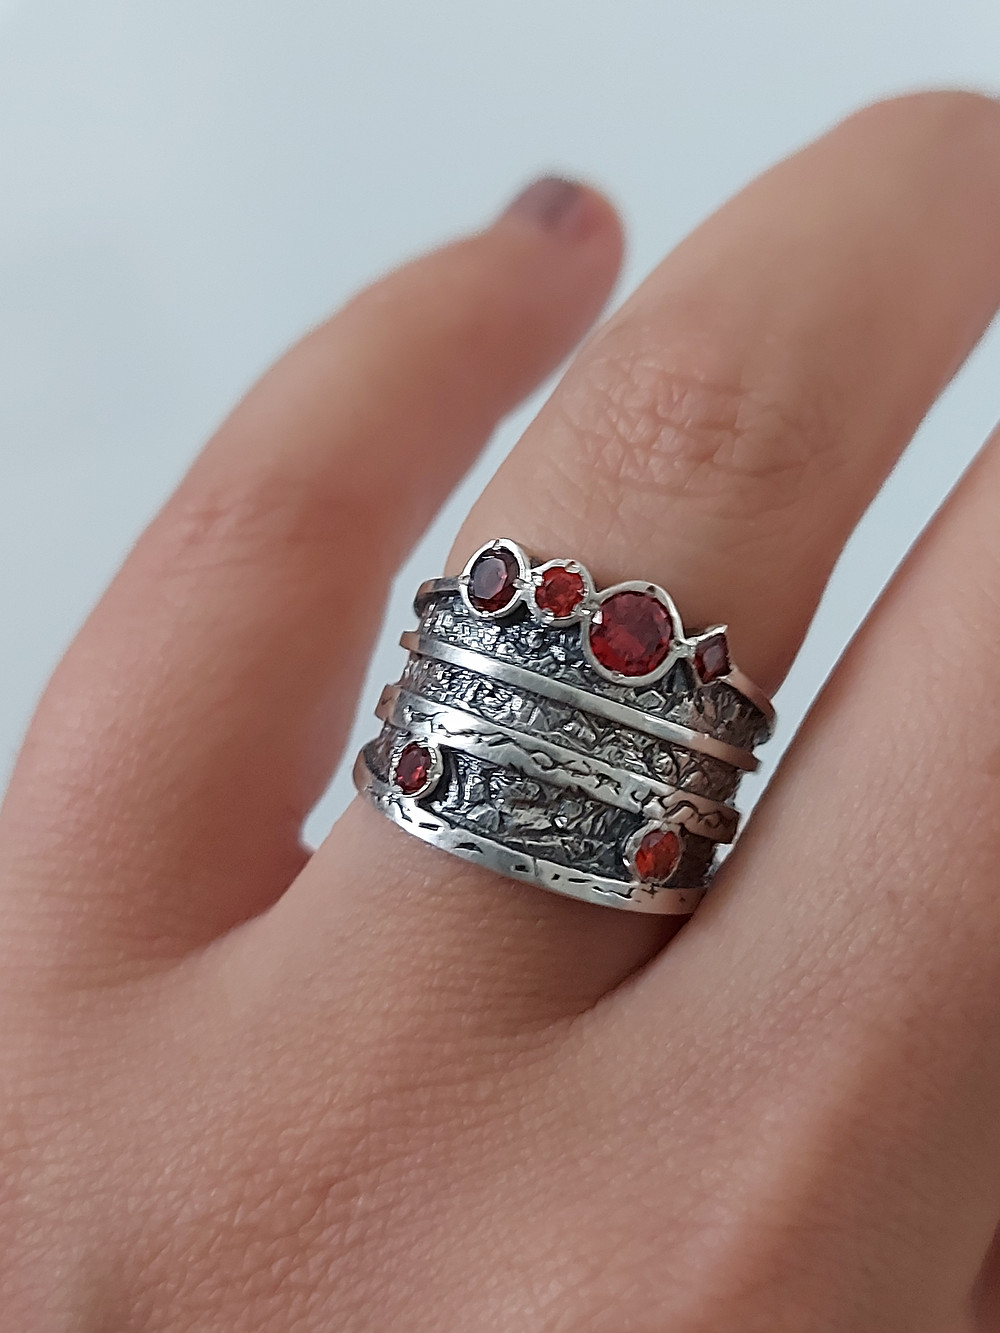 silver ring with zirconia gemstones on a finger